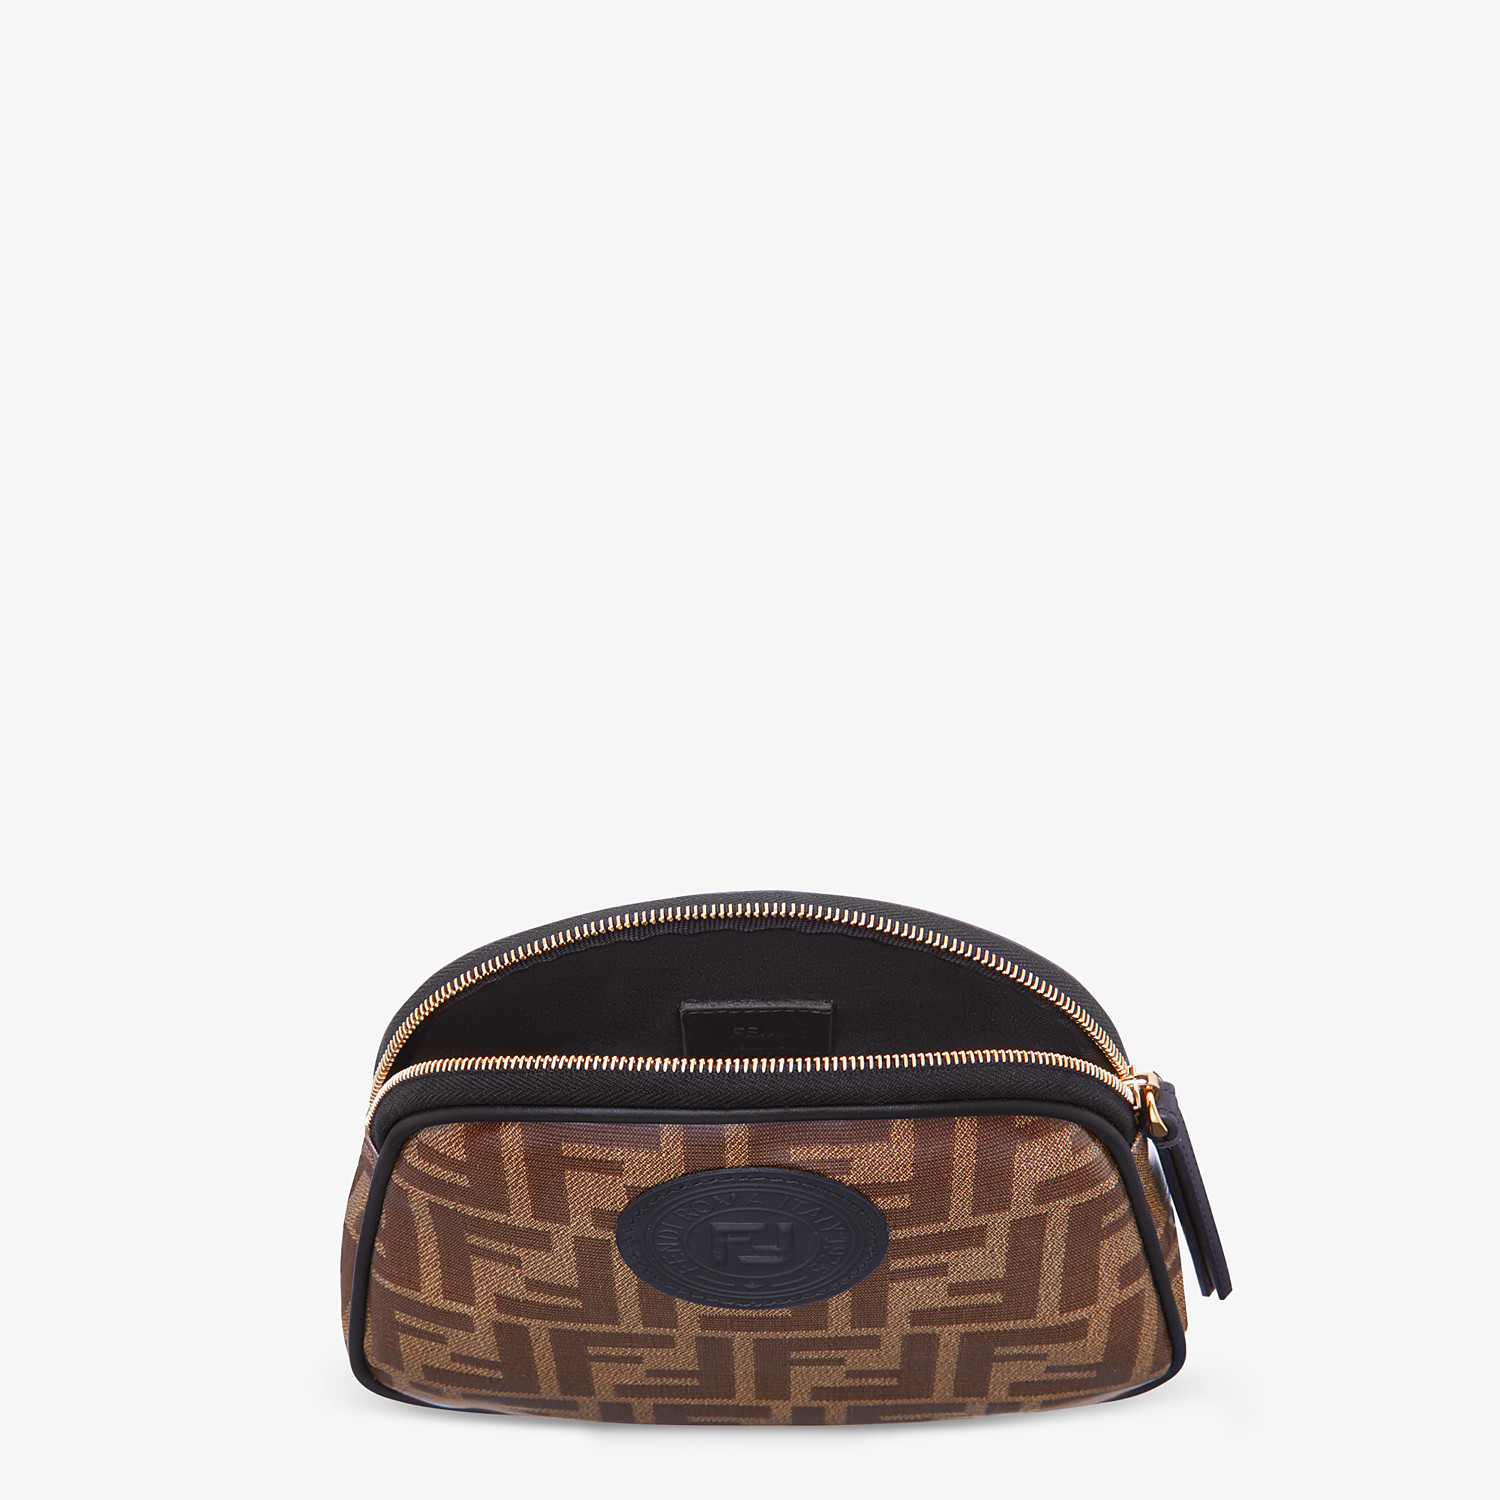 FENDI TOILETRY CASE MEDIUM - Brown fabric toiletry case - view 3 detail